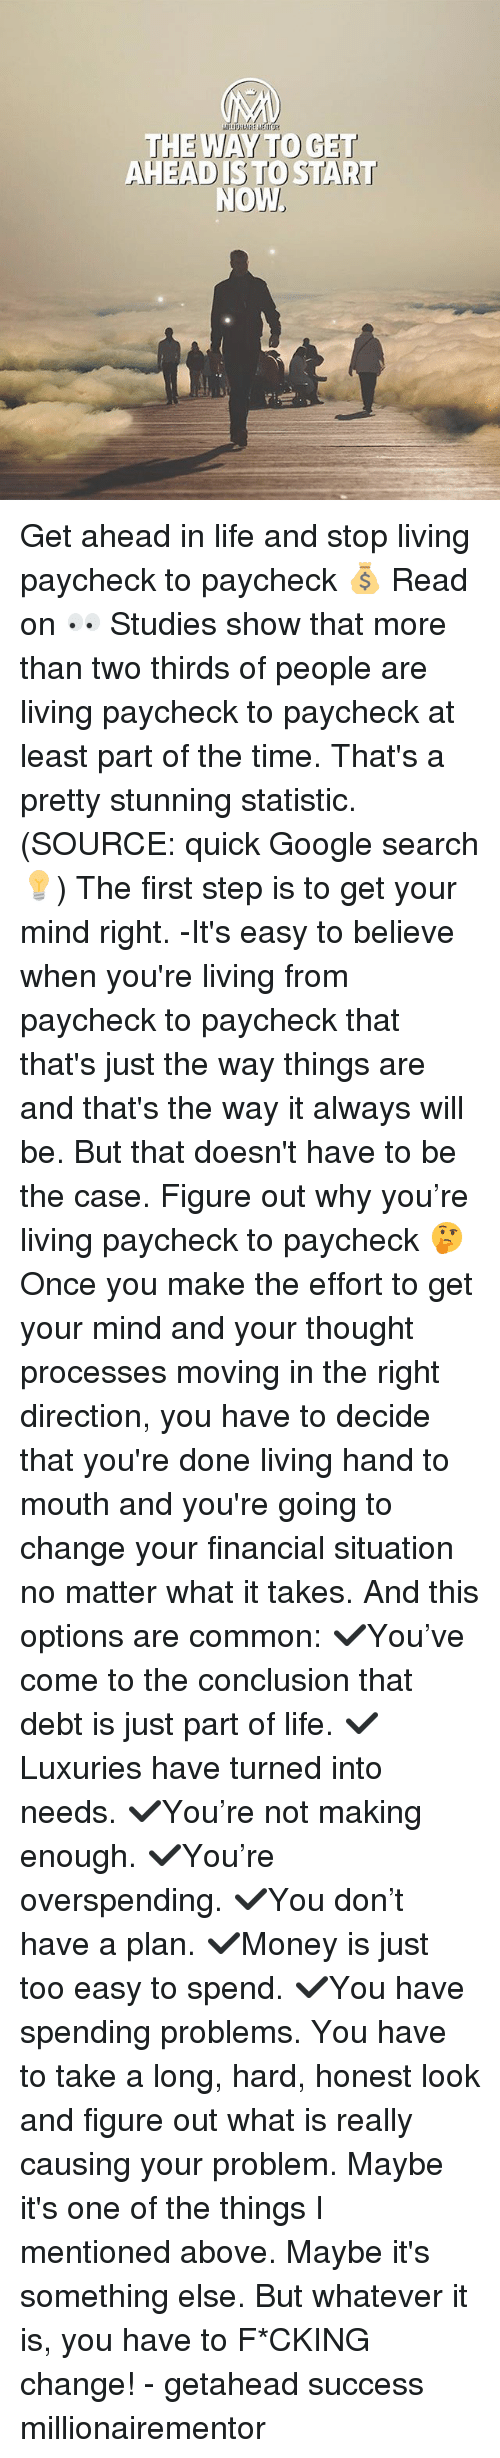 Statistic: THE WAY TO GET  AHEAD ISTO START Get ahead in life and stop living paycheck to paycheck 💰 Read on 👀 Studies show that more than two thirds of people are living paycheck to paycheck at least part of the time. That's a pretty stunning statistic. (SOURCE: quick Google search💡) The first step is to get your mind right. -It's easy to believe when you're living from paycheck to paycheck that that's just the way things are and that's the way it always will be. But that doesn't have to be the case. Figure out why you're living paycheck to paycheck 🤔 Once you make the effort to get your mind and your thought processes moving in the right direction, you have to decide that you're done living hand to mouth and you're going to change your financial situation no matter what it takes. And this options are common: ✔️You've come to the conclusion that debt is just part of life. ✔️Luxuries have turned into needs. ✔️You're not making enough. ✔️You're overspending. ✔️You don't have a plan. ✔️Money is just too easy to spend. ✔️You have spending problems. You have to take a long, hard, honest look and figure out what is really causing your problem. Maybe it's one of the things I mentioned above. Maybe it's something else. But whatever it is, you have to F*CKING change! - getahead success millionairementor